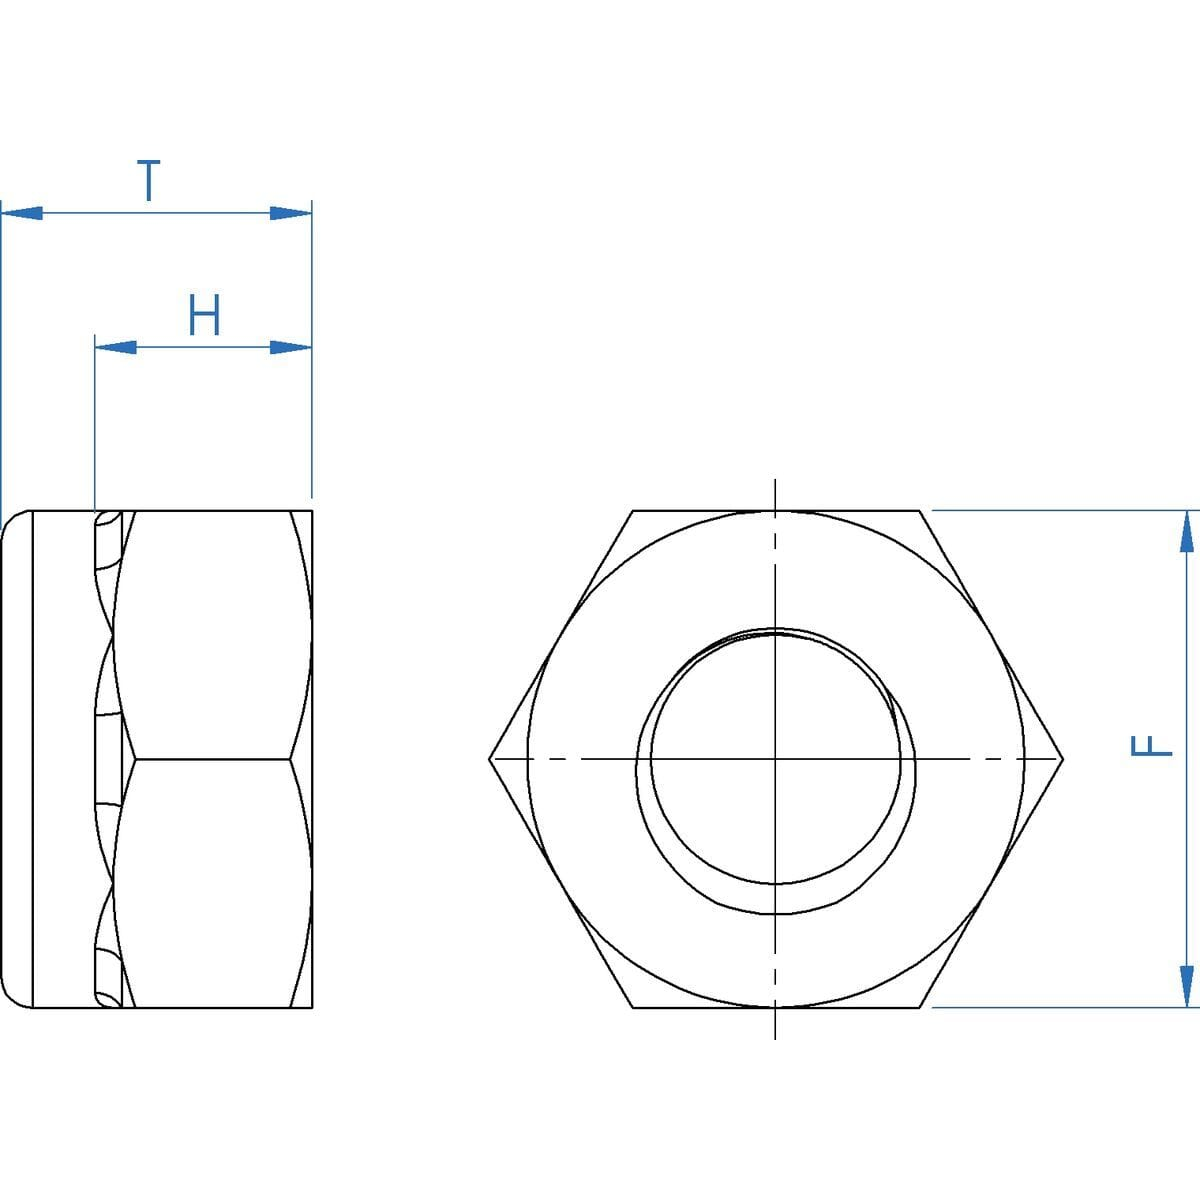 M6 Hexagon Nylon Locking Nuts (DIN 985) - Marine Stainless Steel (A4) Drawing